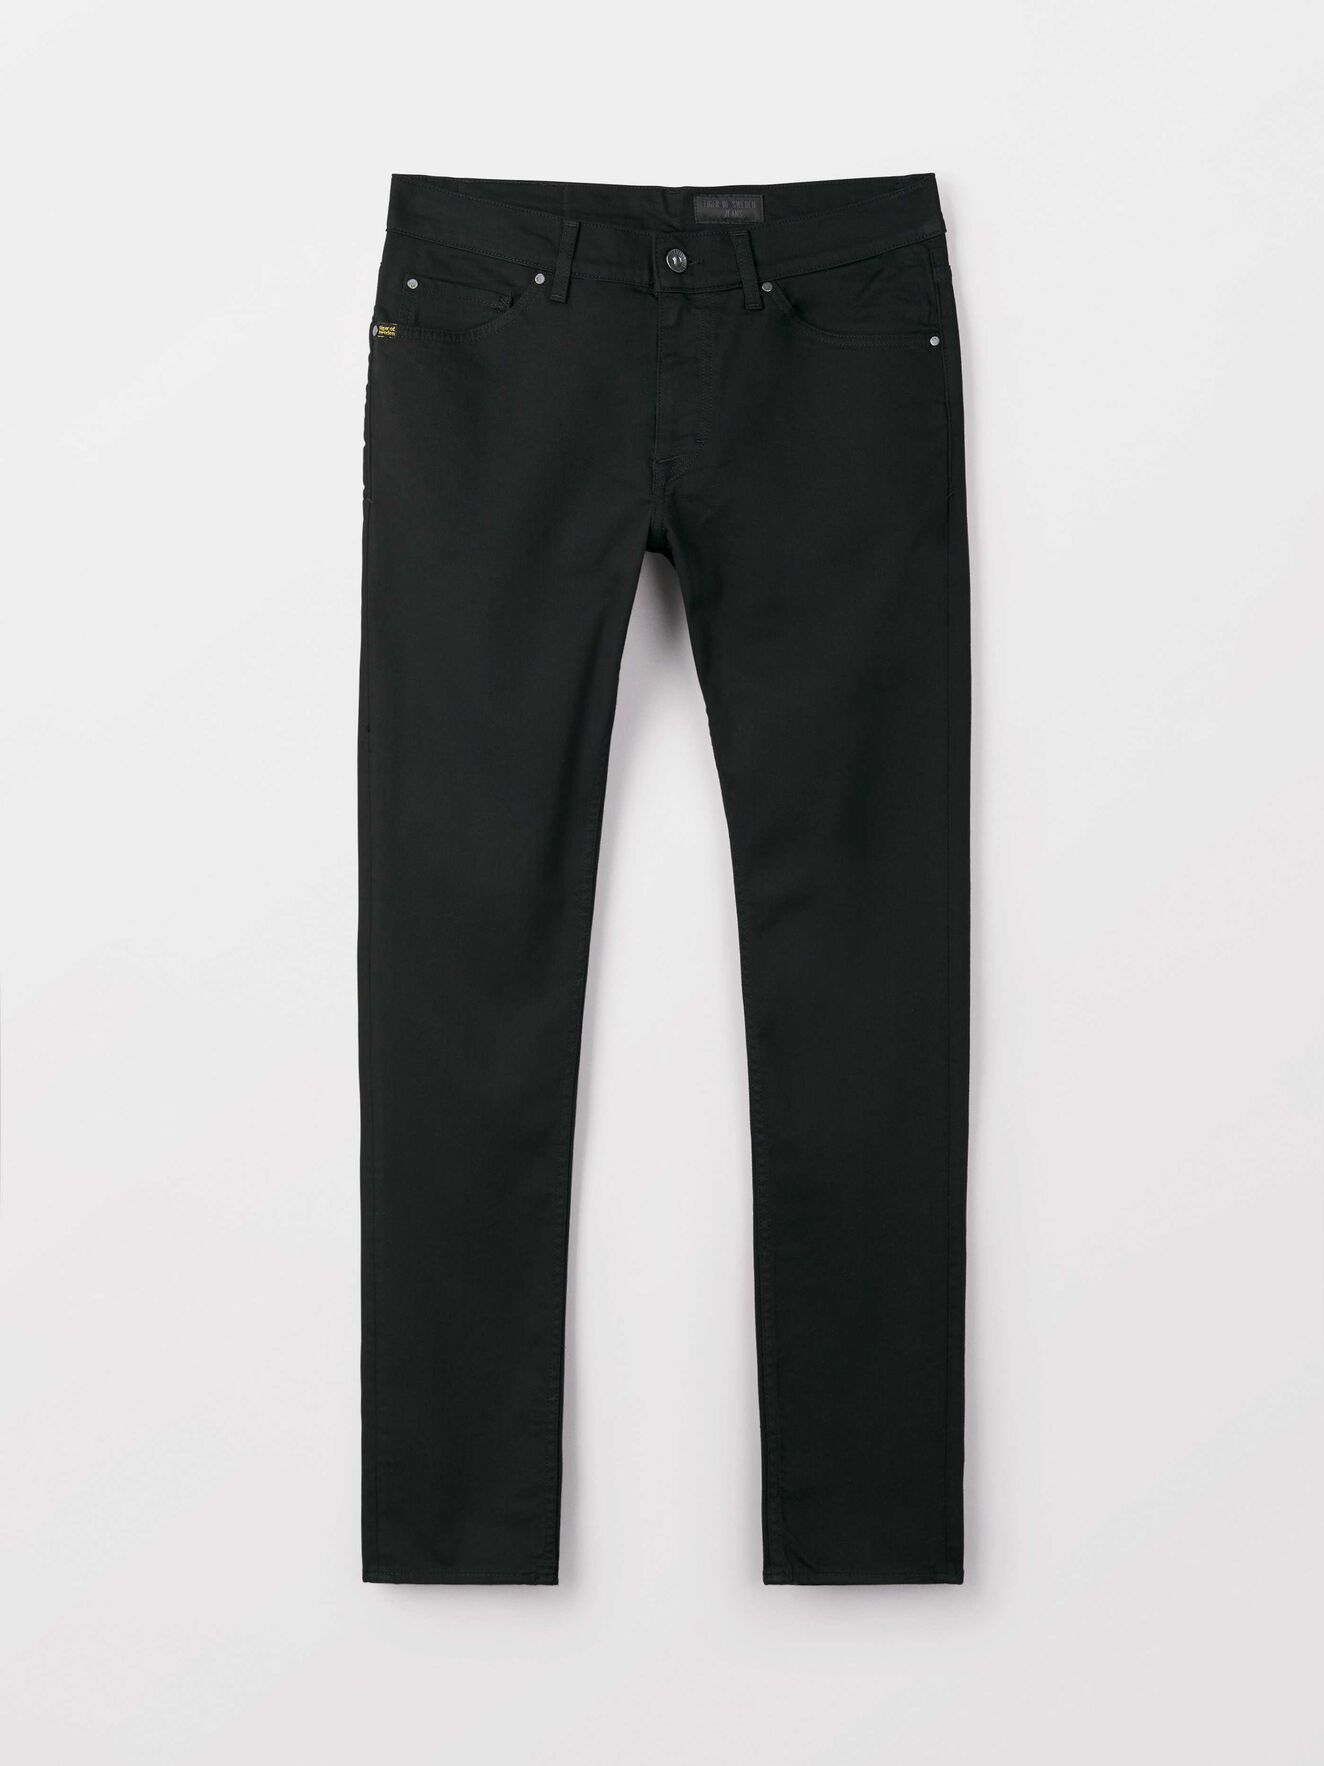 Evolve Jeans in Black from Tiger of Sweden